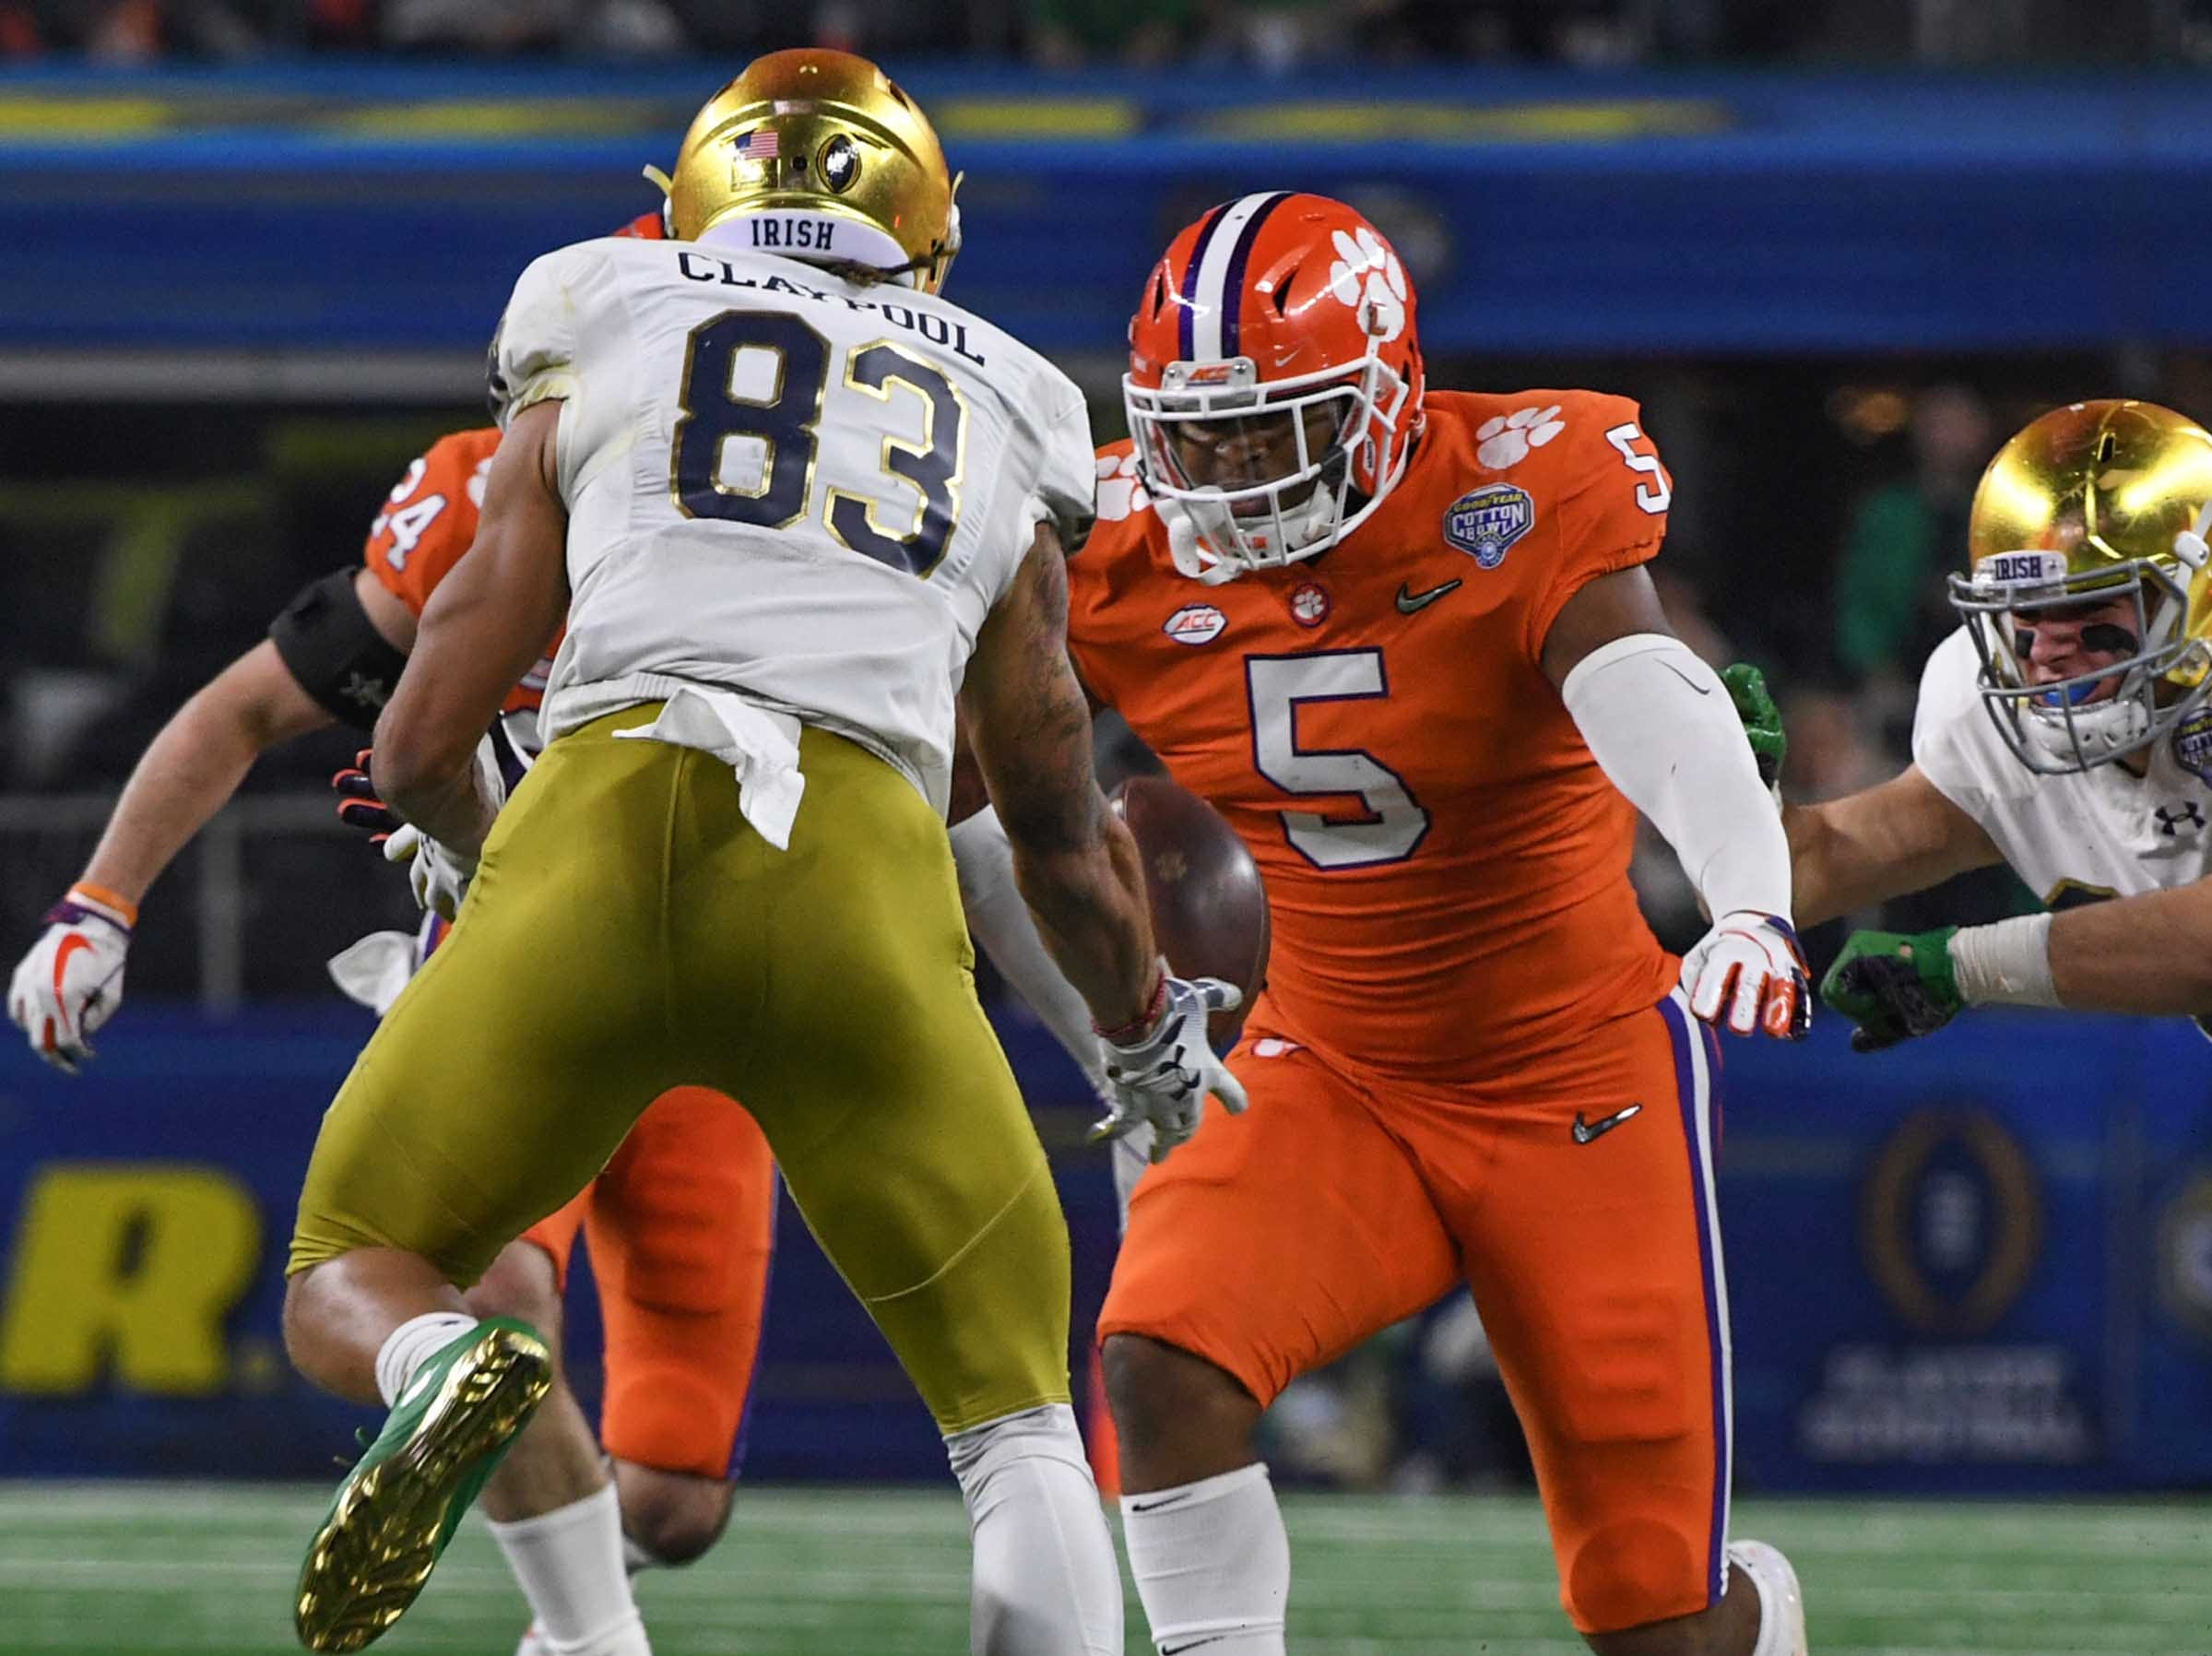 Clemson linebacker Shaq Smith (5) runs to tackle Notre Dame wide receiver Chase Claypool (83) during the third quarter of the College Football Playoff Semifinal at the Goodyear Cotton Bowl Classic at AT&T Stadium in Arlington, Texas Saturday, December 29, 2018.